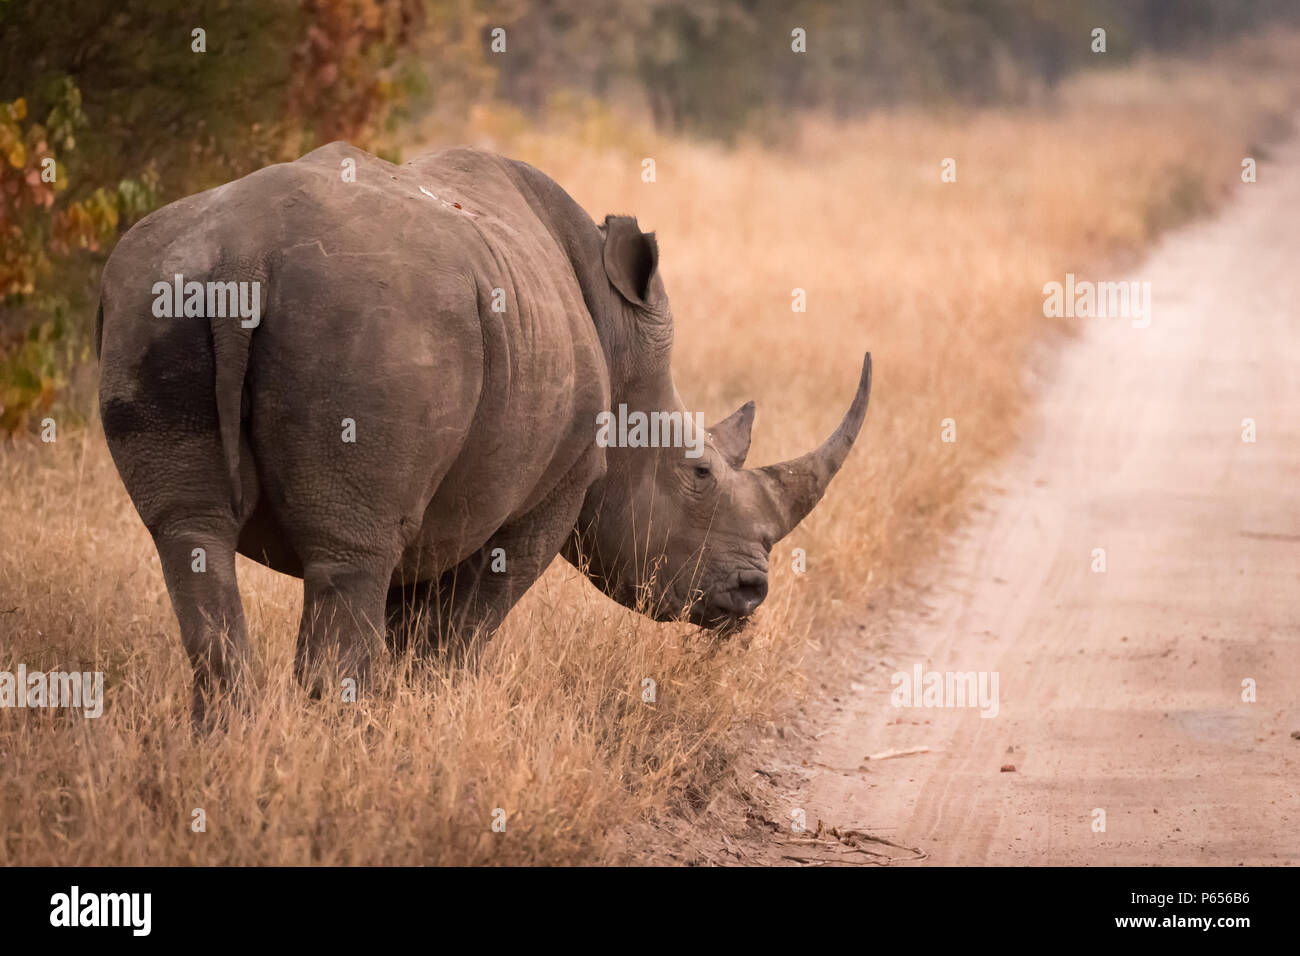 White Rhino on roadside - Stock Image